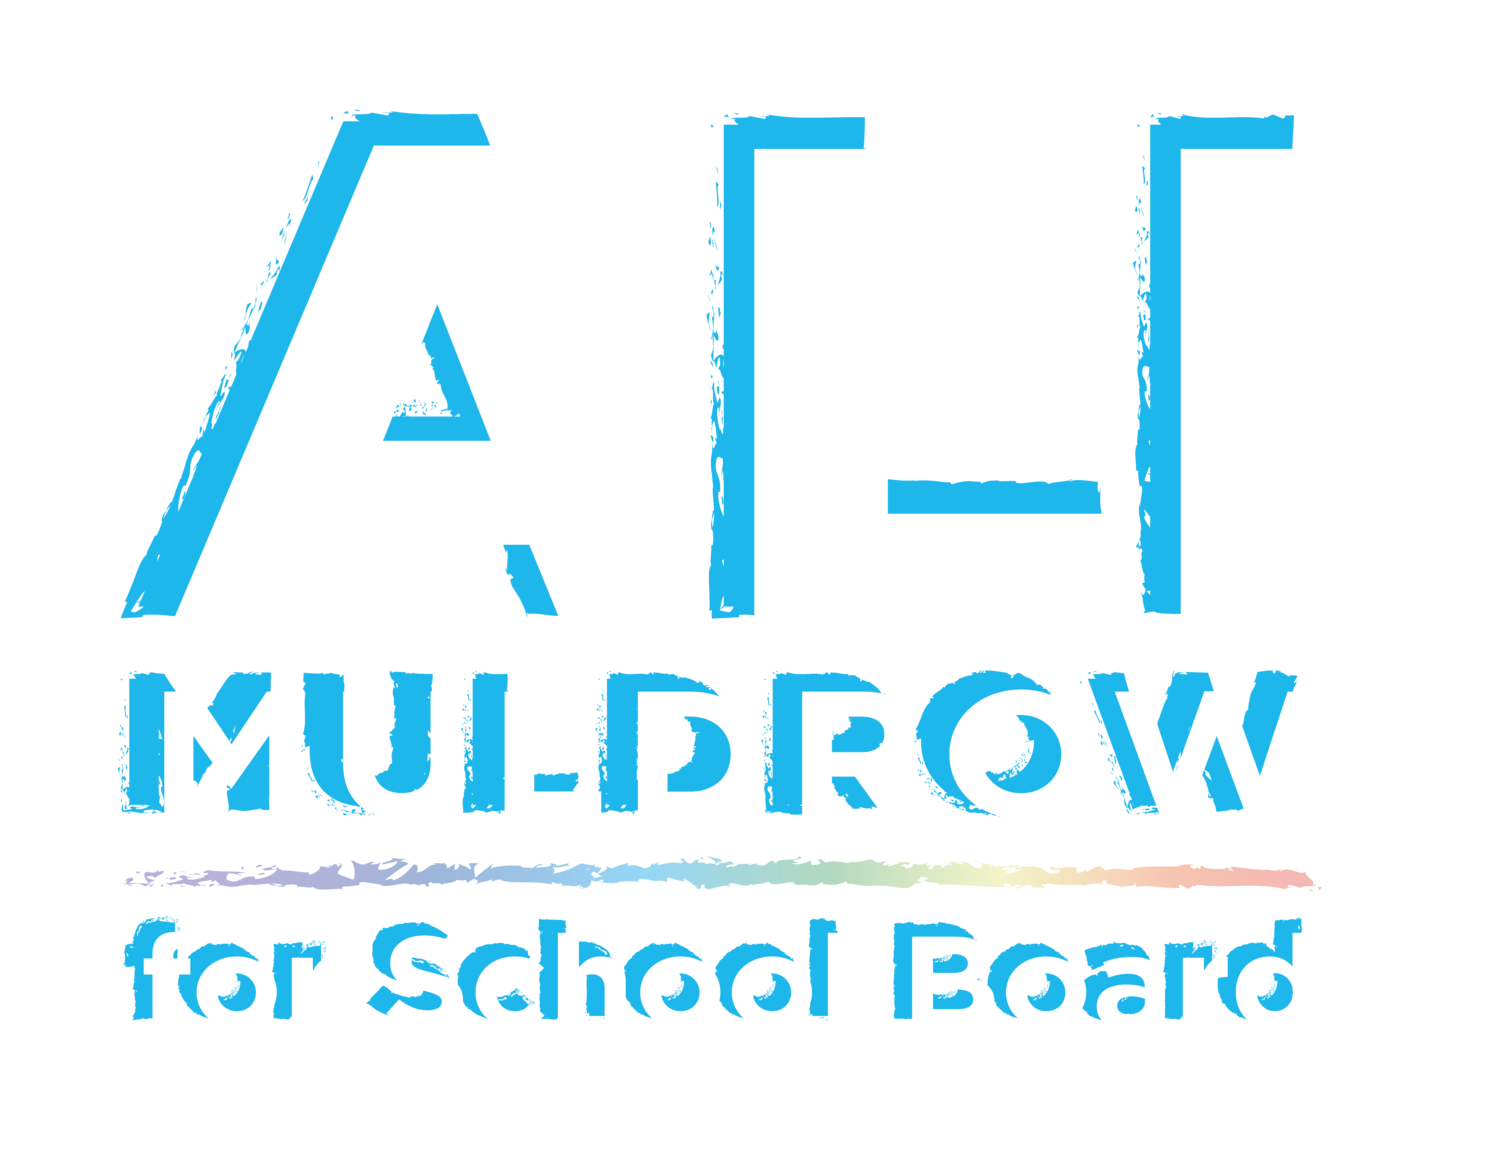 Ali Muldrow for School Board